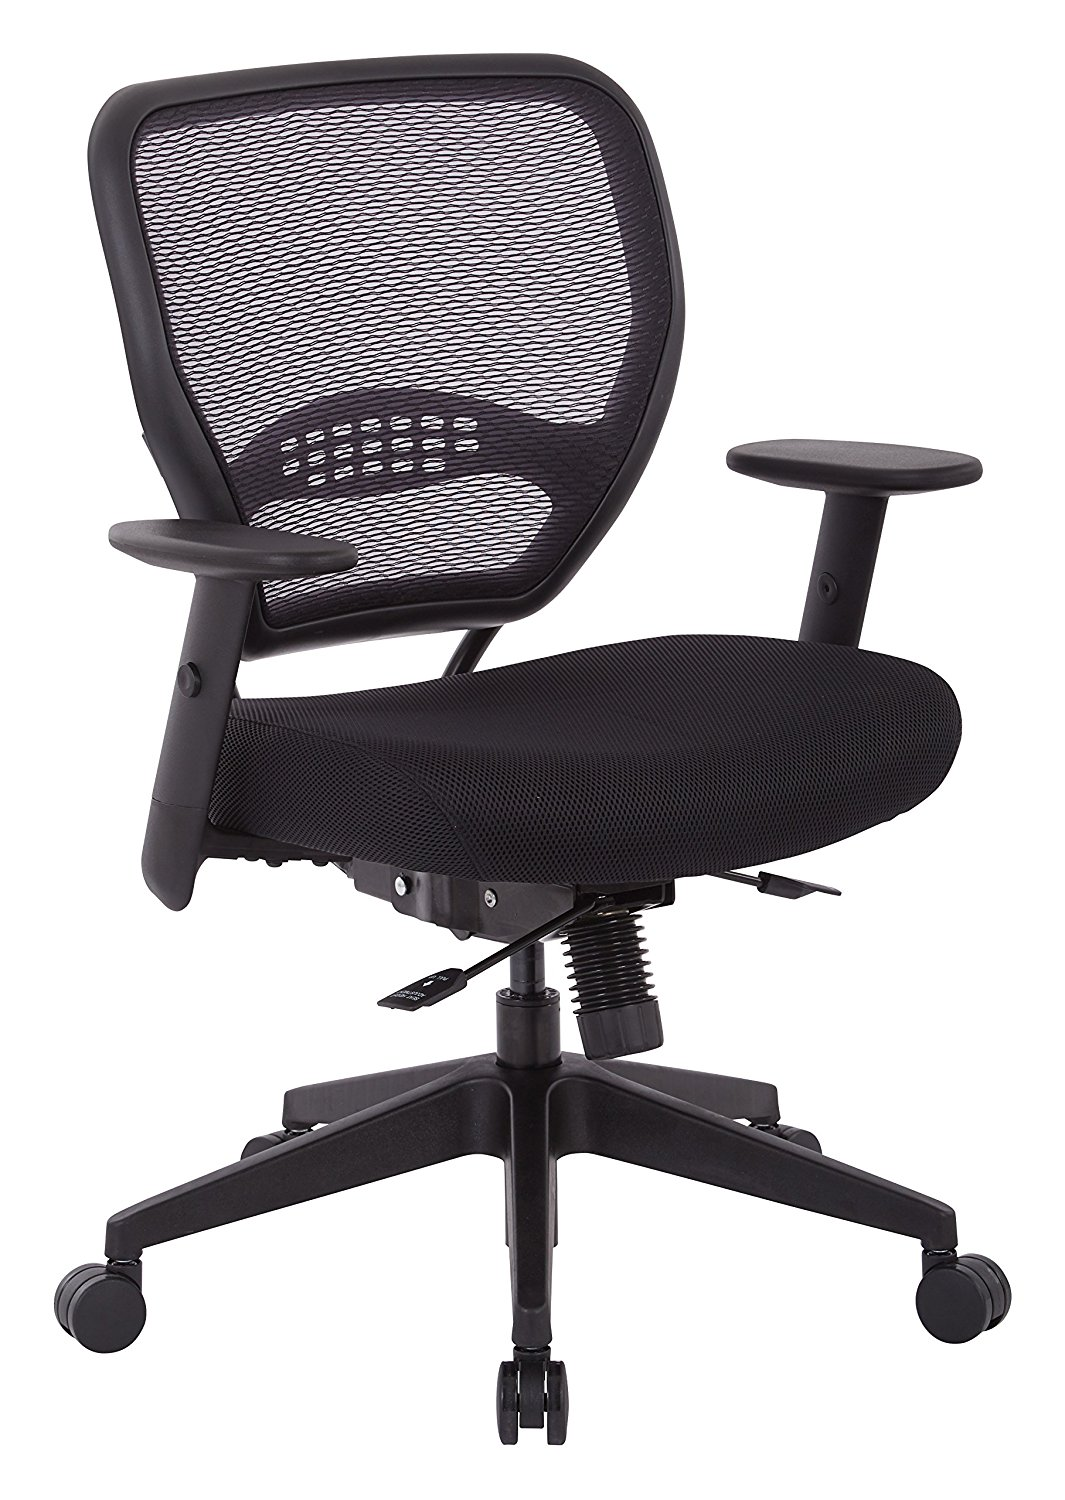 SPACE Seating AirGrid Back and Padded Mesh Seat, 2-to-1 Synchro Tilt Control, Adjustable Arms, Nylon Base Adjustable Managers Chair, Black